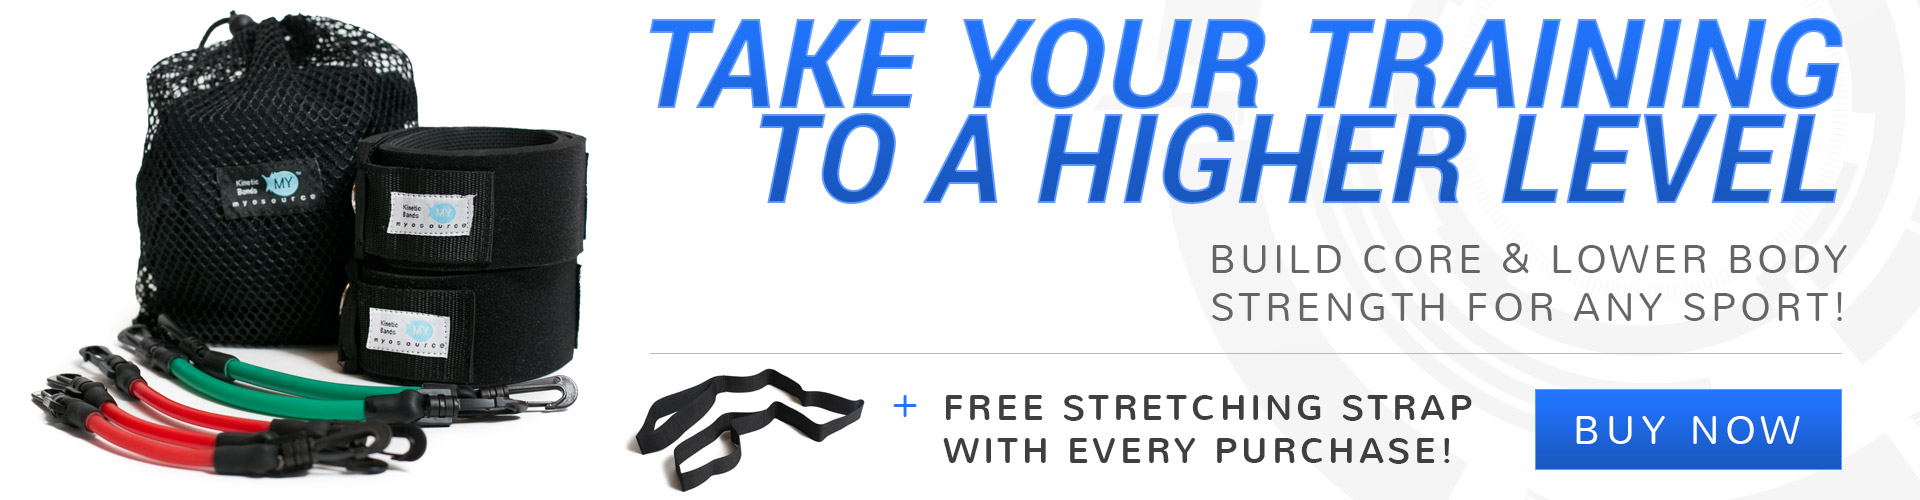 Build core and lower body strength for any sport with Kinetic Bands. Free stretching strap with every purchase! Take your training to a higher level with our resistance band training. 30-day money back guarantee.